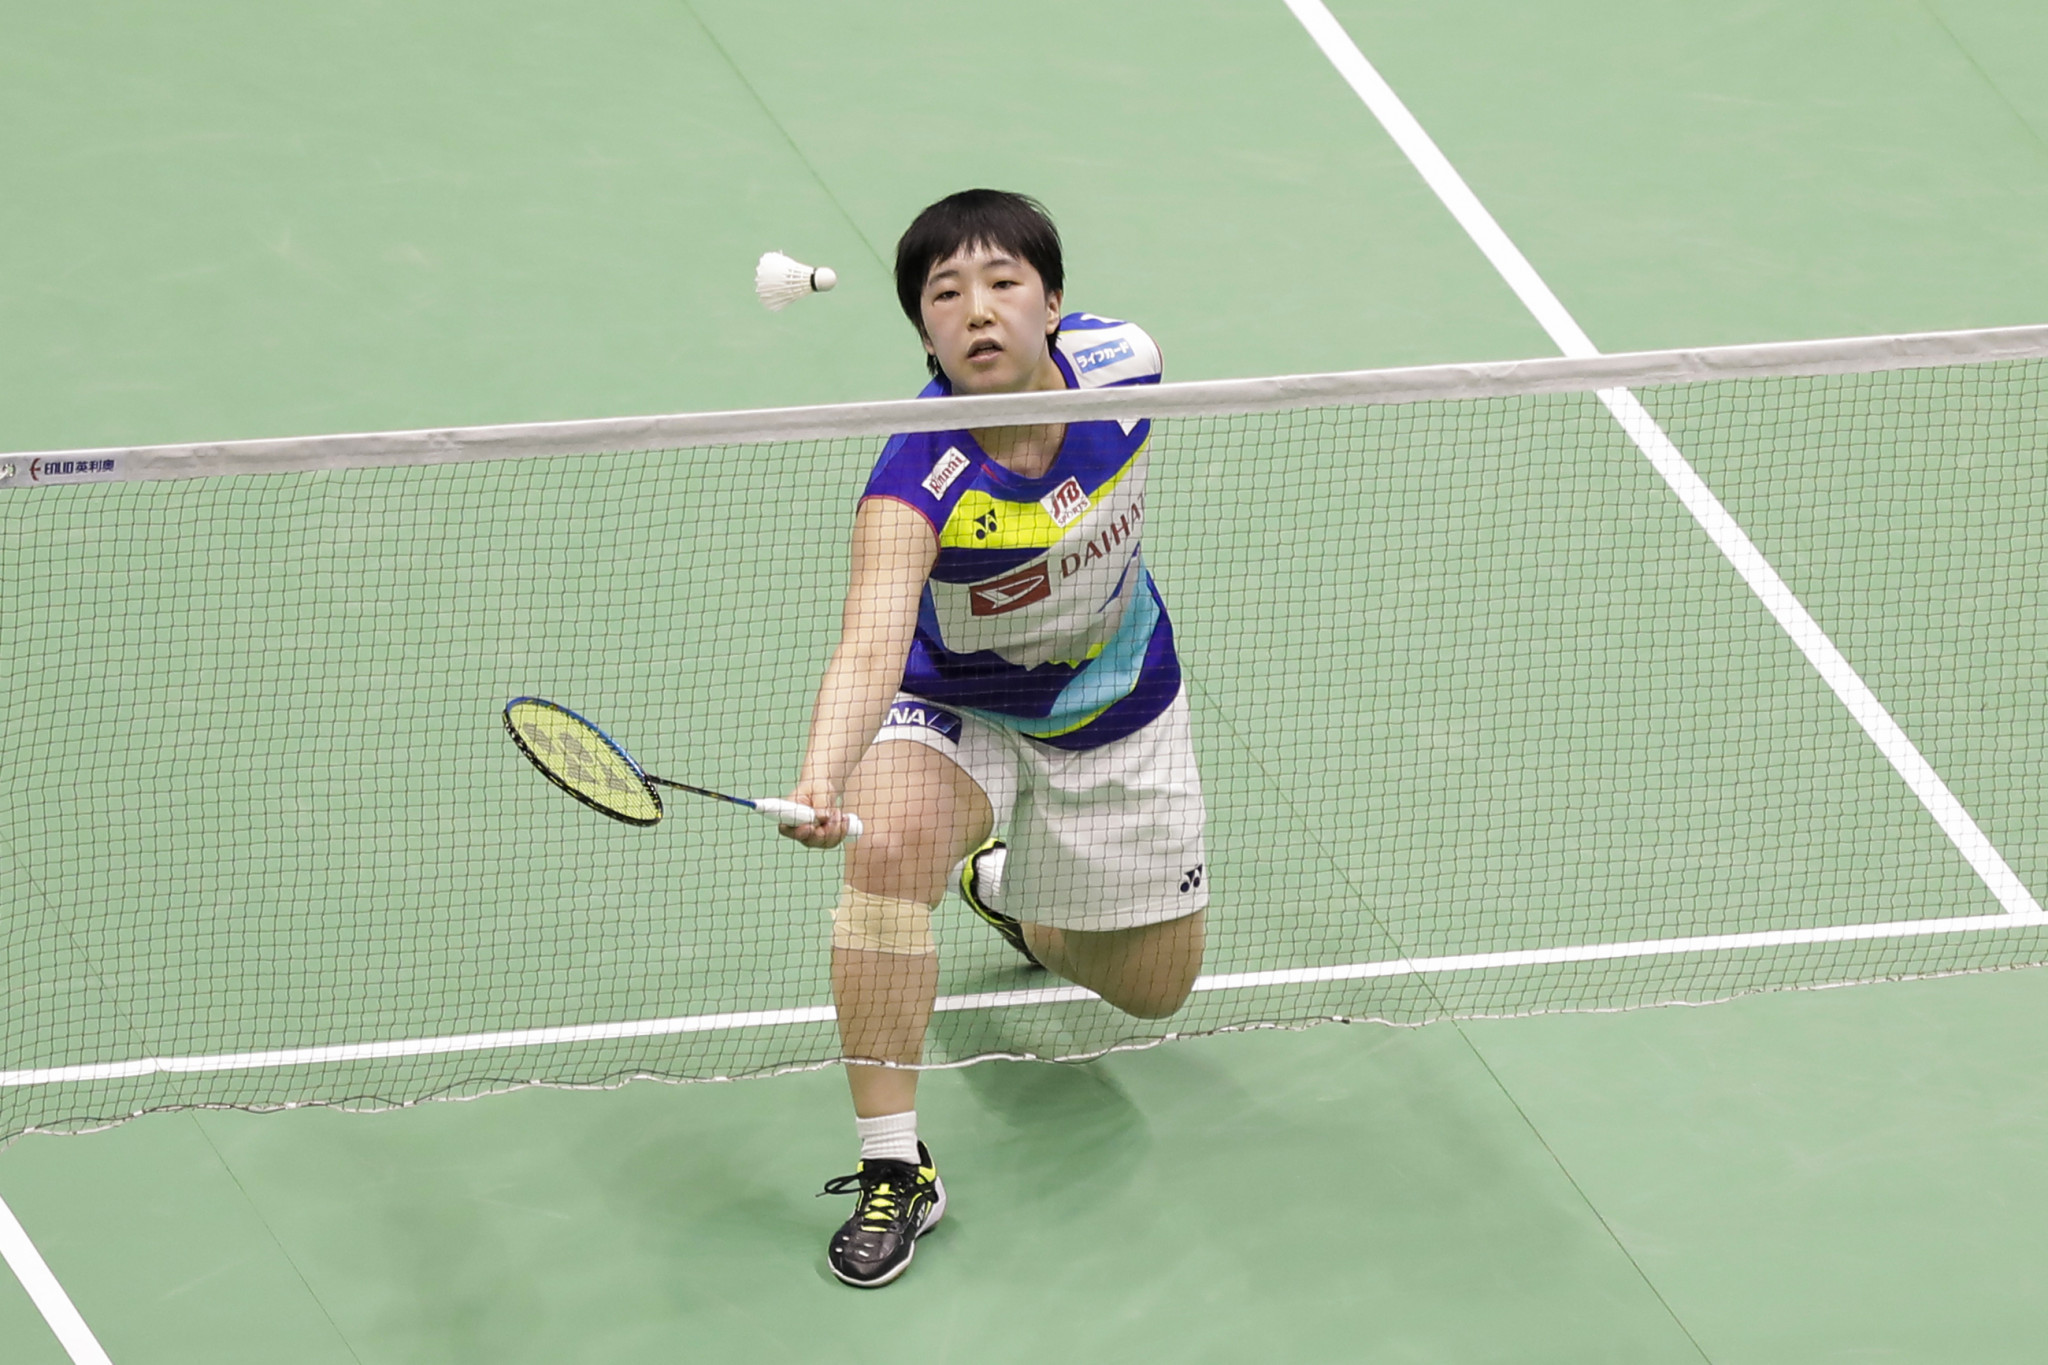 Akane Yamaguchi progressed to the quarter-final stage of the competition ©Getty Images